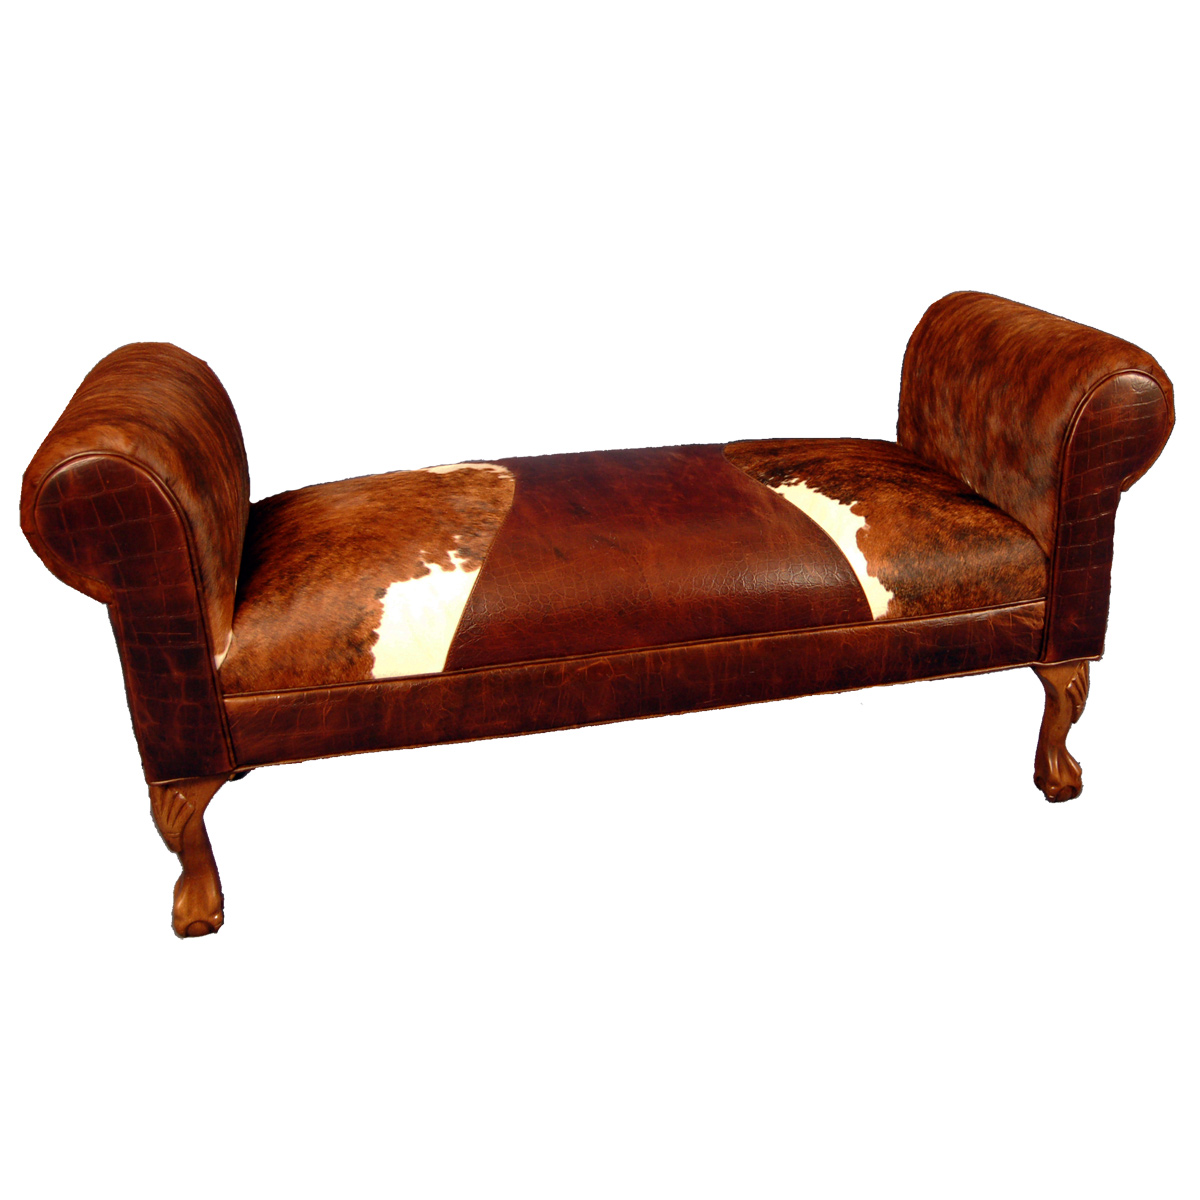 Black Forest Decor Roll arm bench with triumph saddle